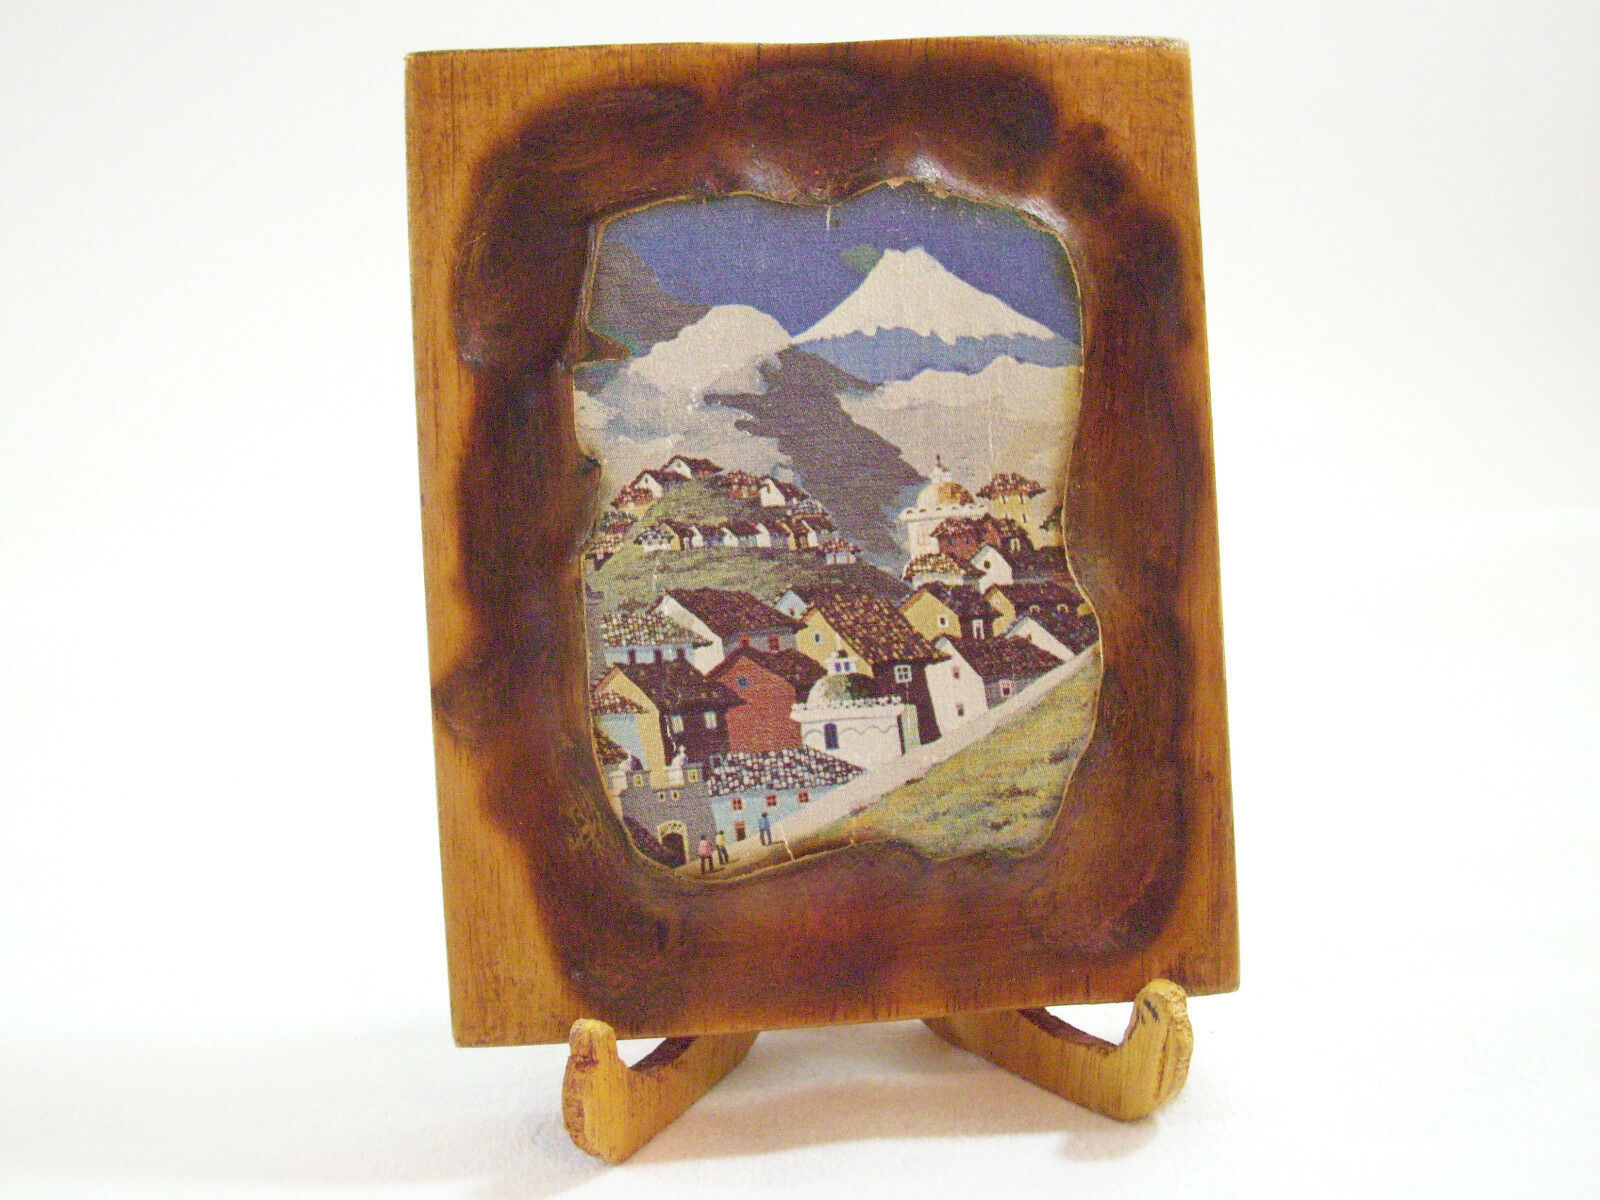 RUSTIC Painting MOUNTAIN VILLAGE Wood Wall Hanging Stand Little Vintage Art